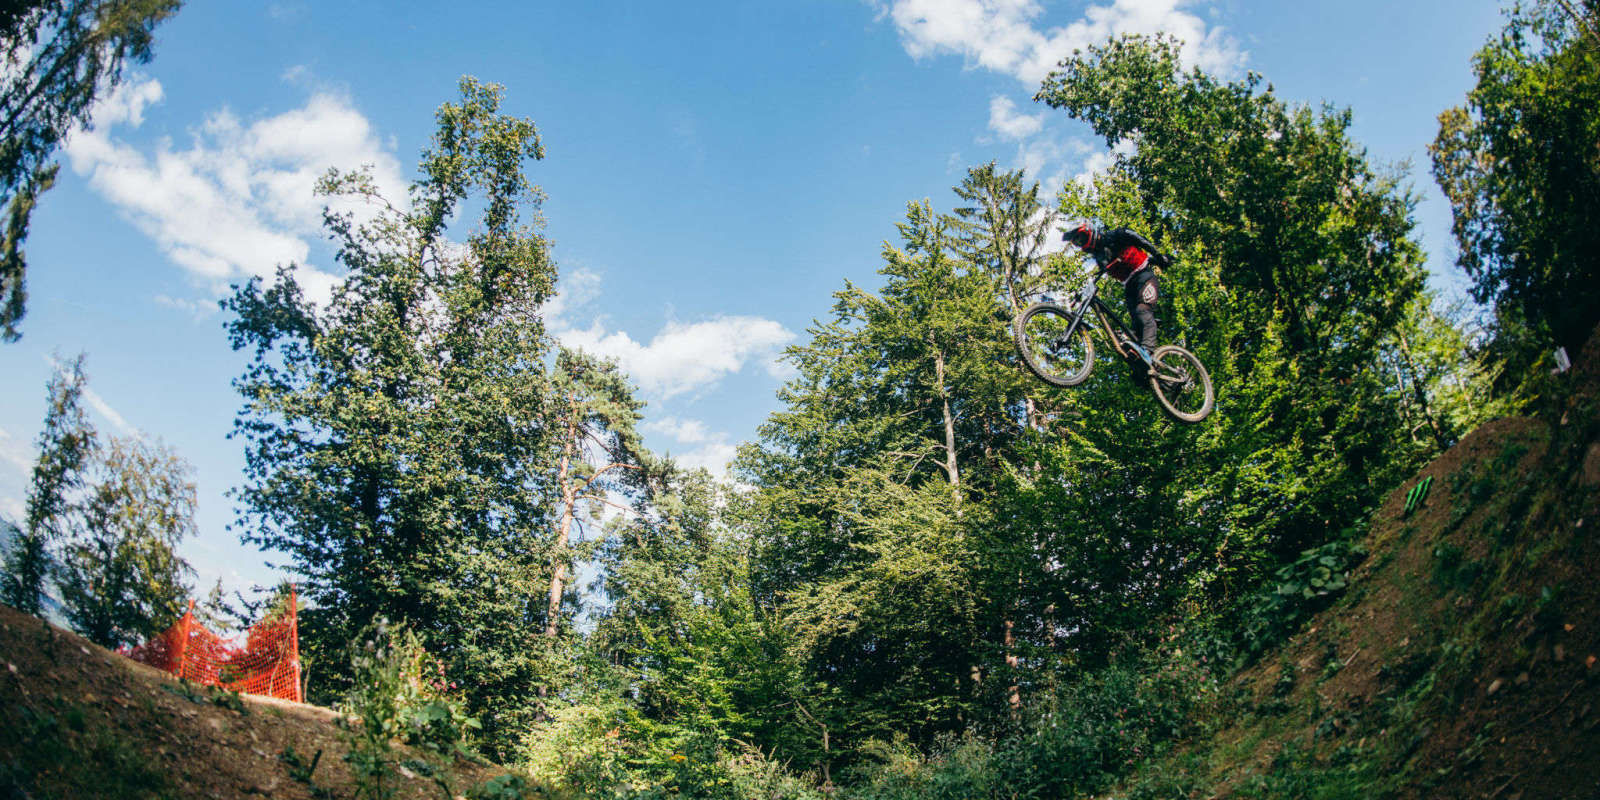 Last race of 2018 Unior DH Cup